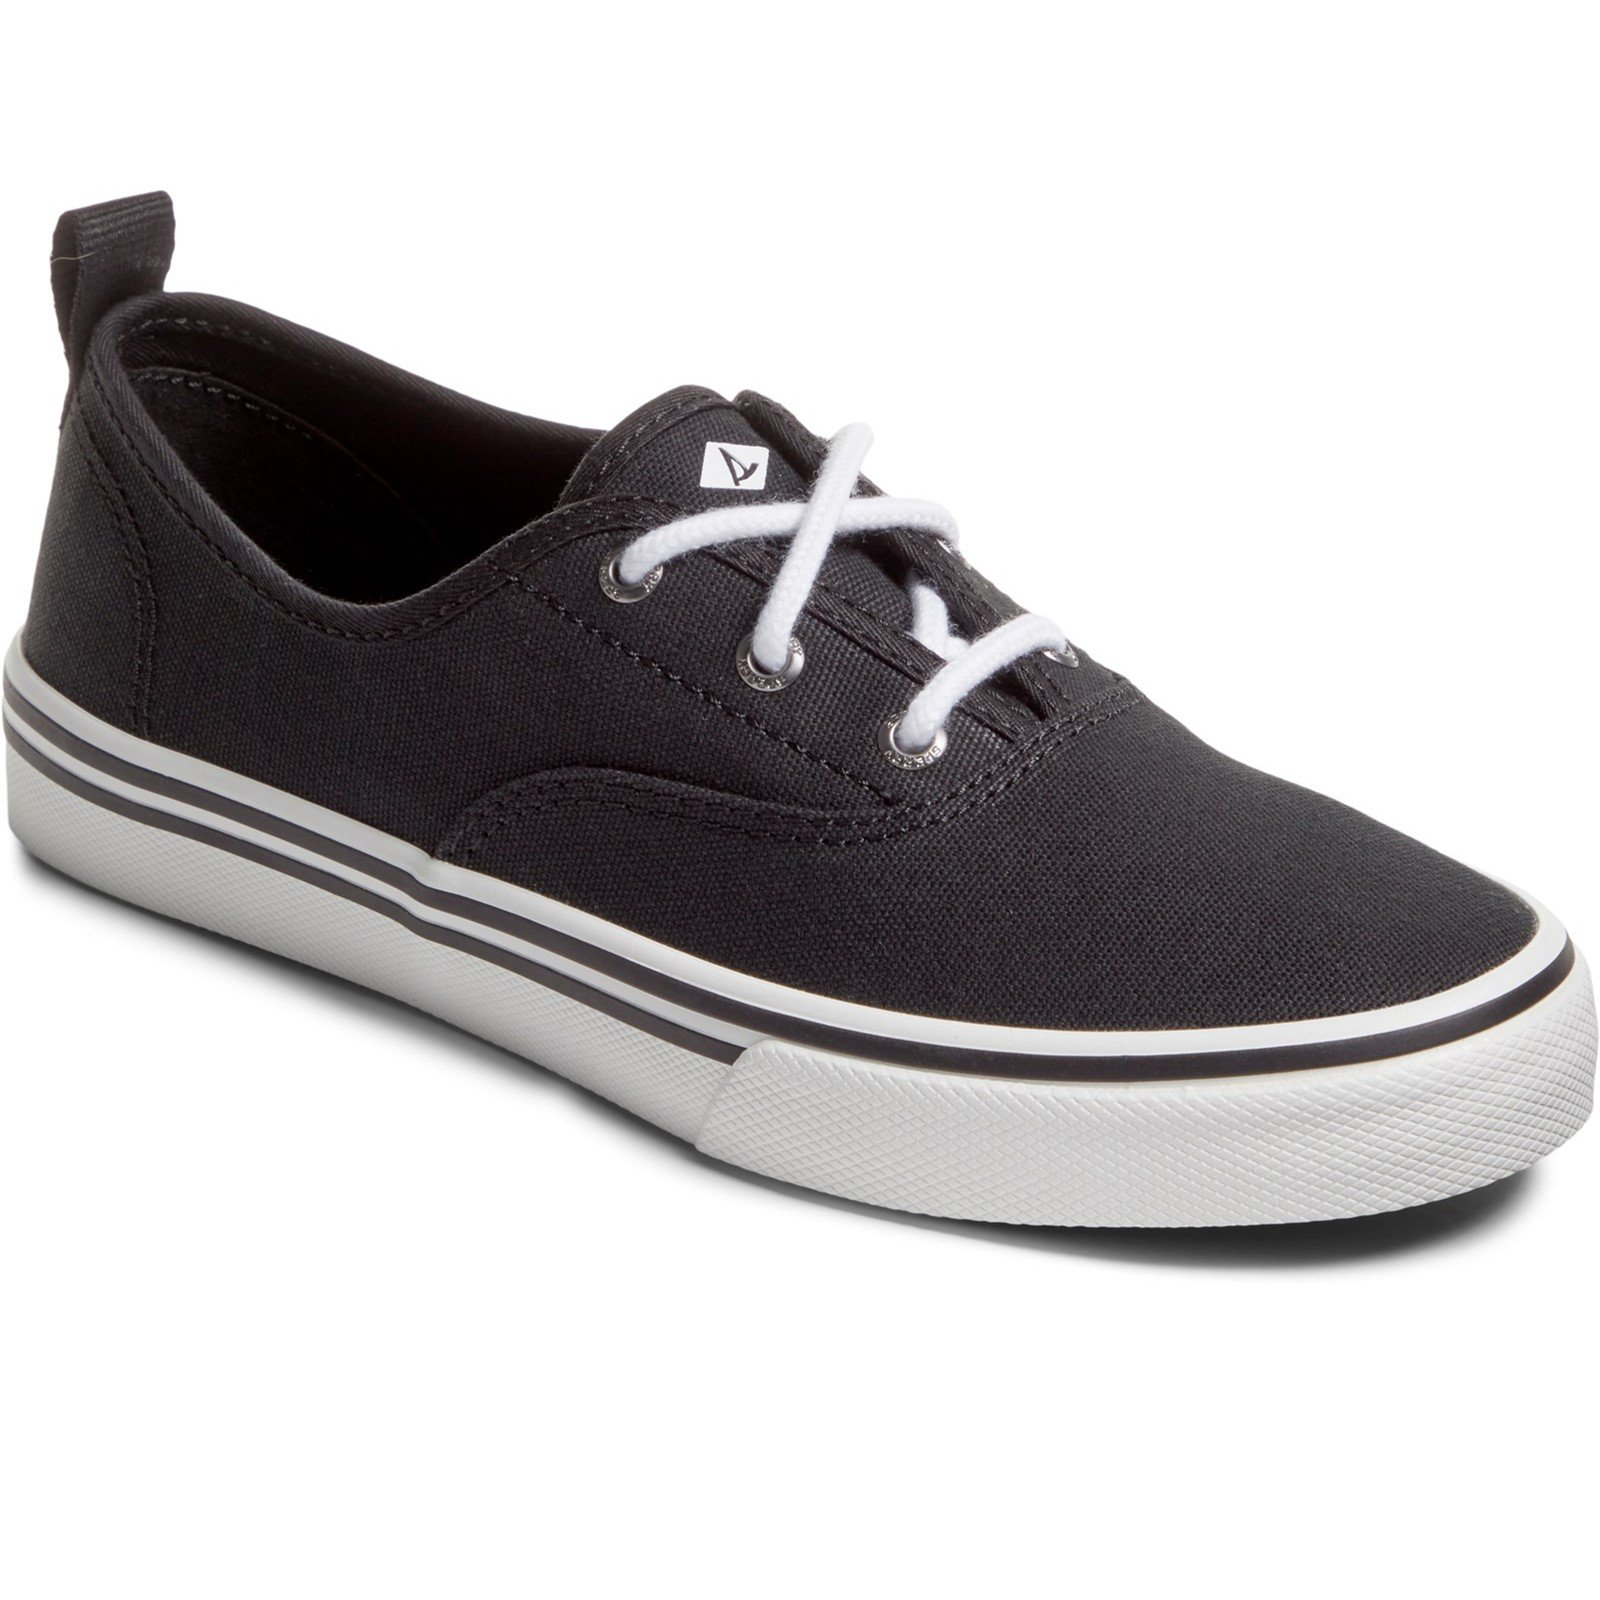 Sperry Women's Crest CVO Trainers Various Colours 32936 - Black 6